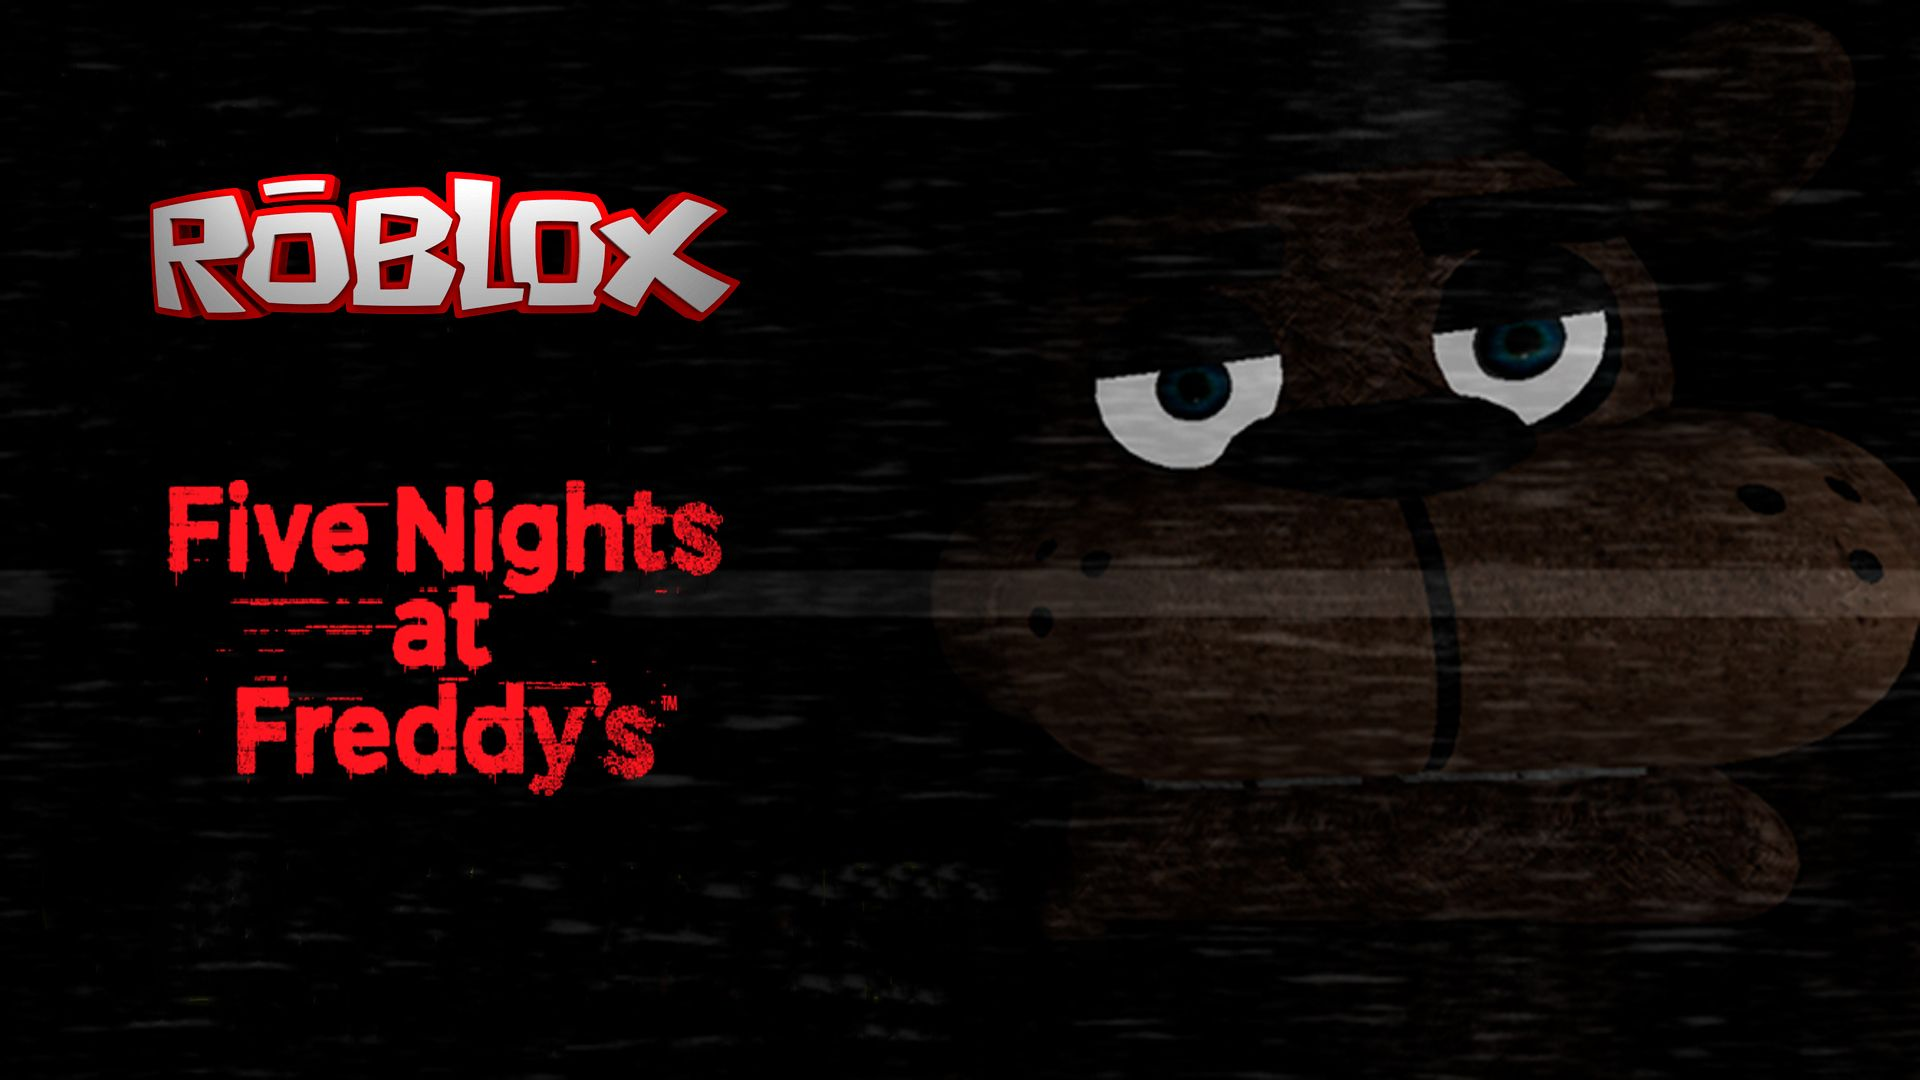 Roblox Fnaf Pizzeria Roleplay Remastered Youtube Roblox Fnaf Pizzeria Rp Remastered Roblox Five Nights At Freddy S Five Night